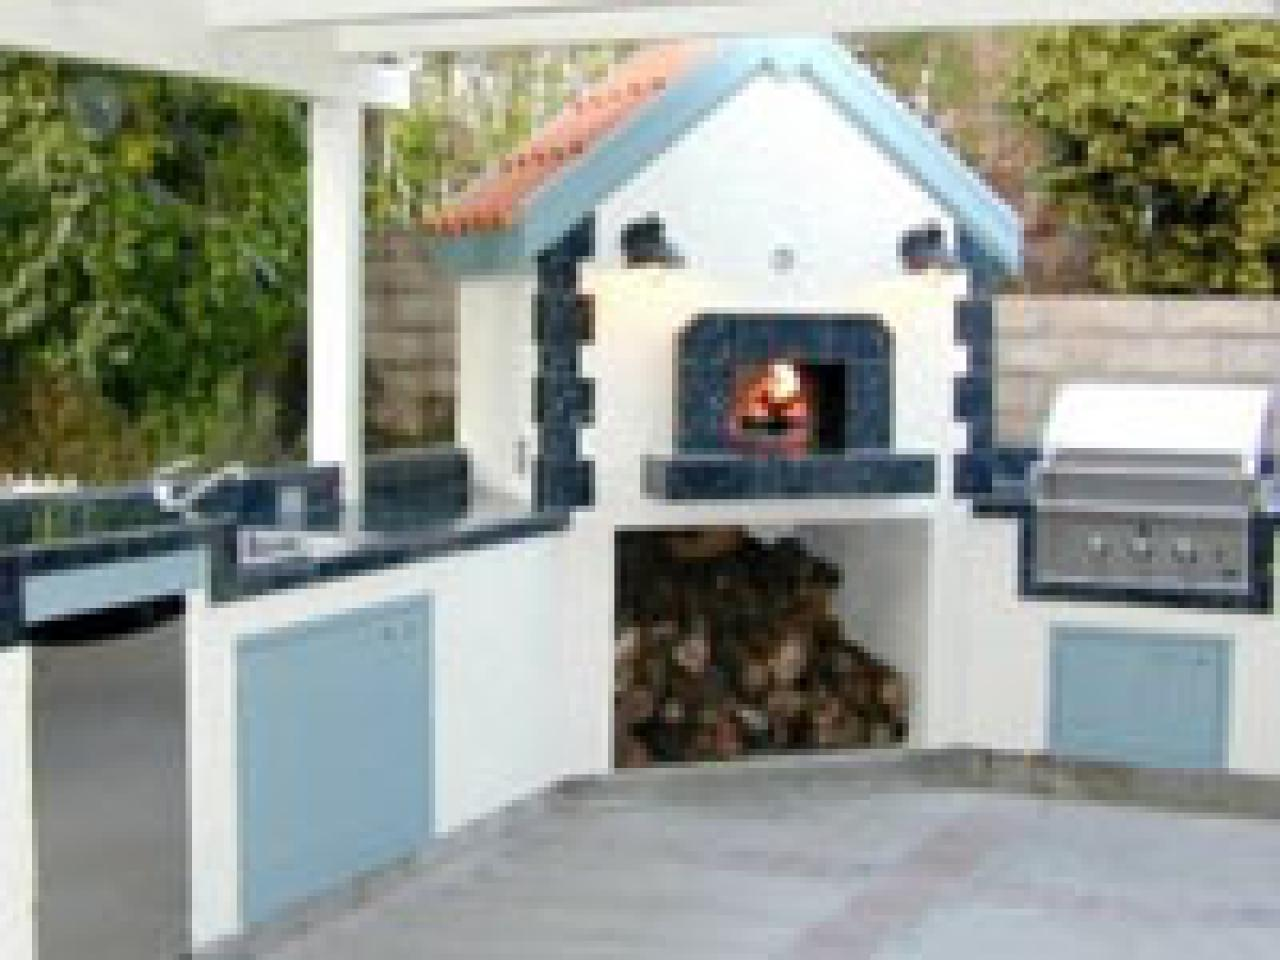 Options for an affordable outdoor kitchen hgtv for Affordable outdoor kitchen ideas